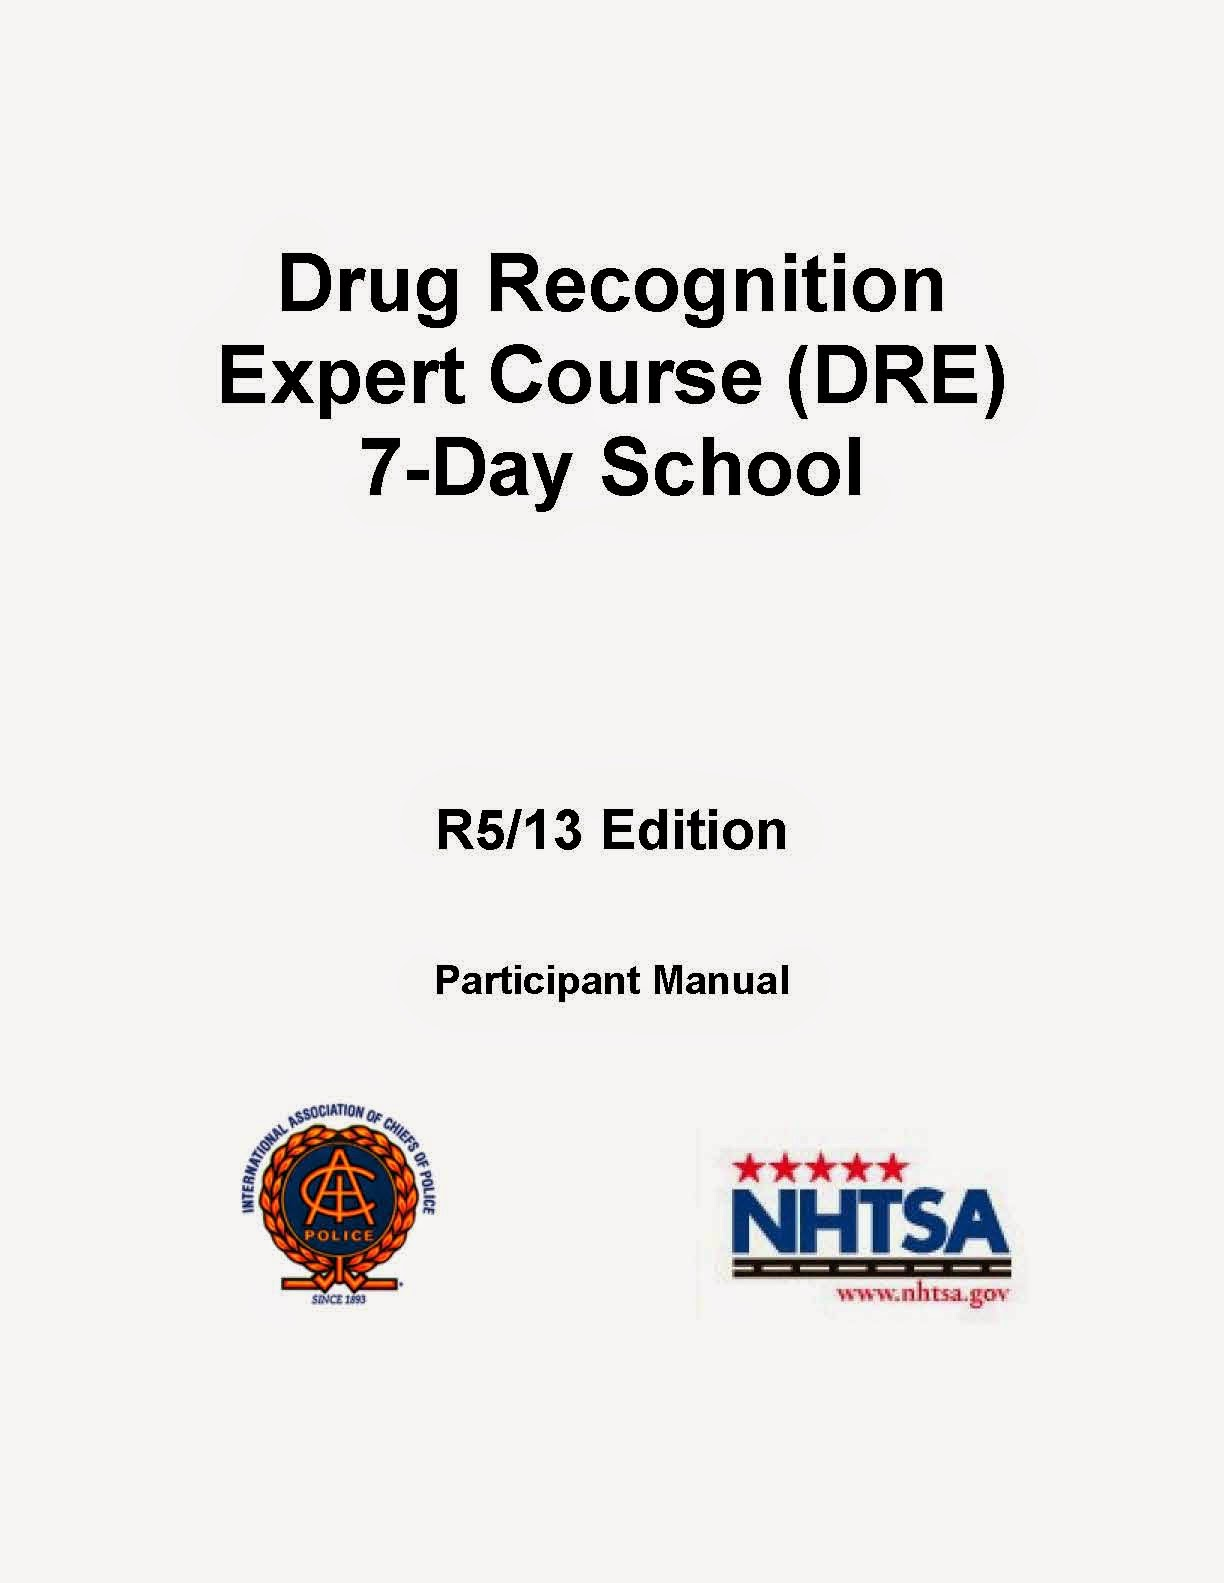 Florida Drug Recognition DRE Experts